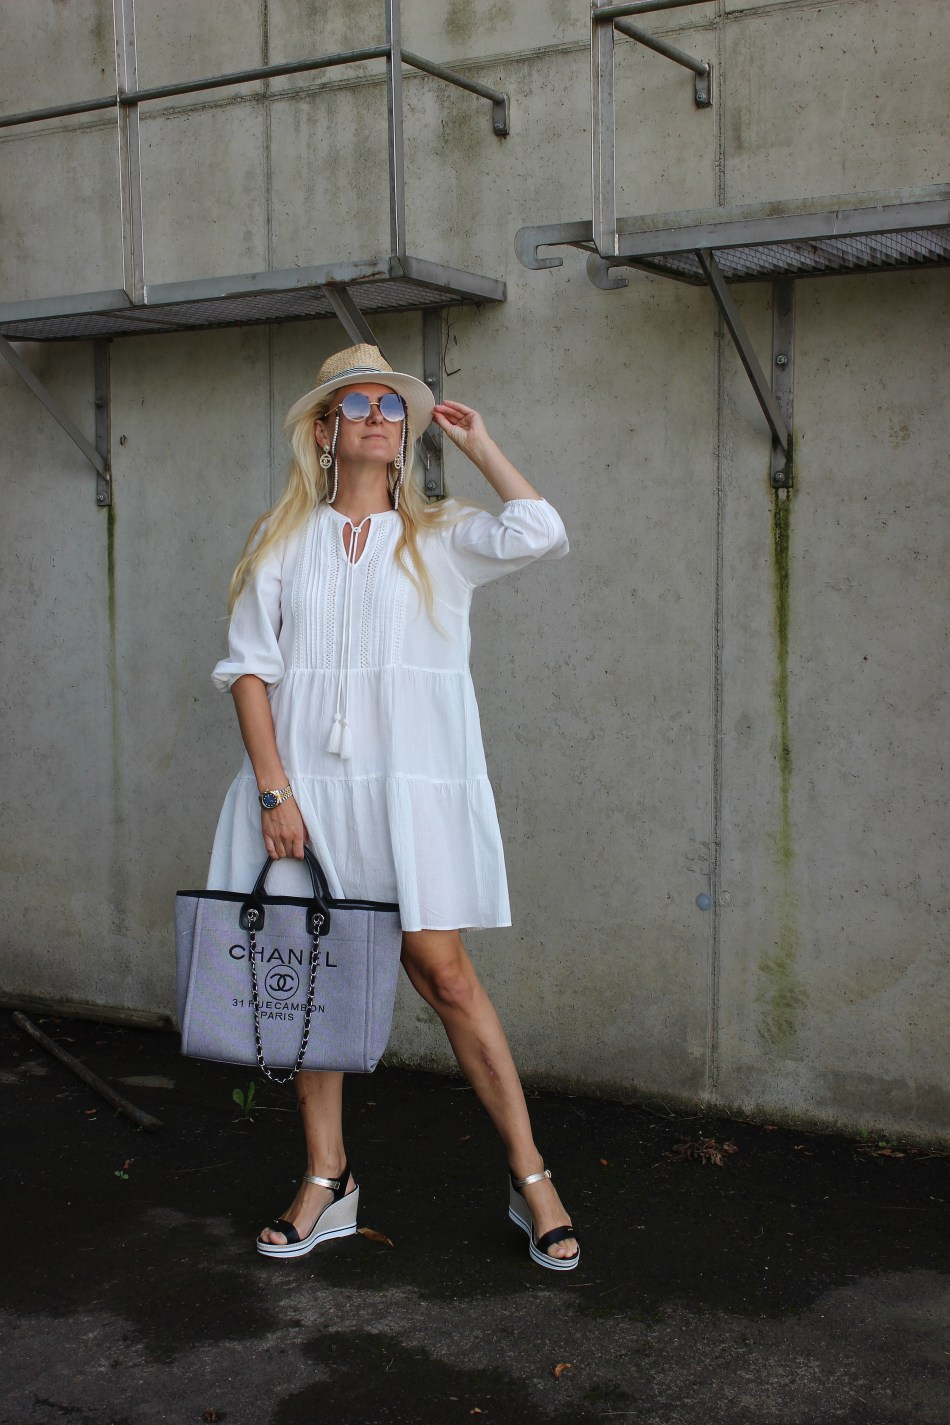 Tunika-Vero Moda-Bestseller-CCC Shoes and Bags-Sandalen-Gino Rossi-Chanel Tasche-carrieslifestyle-Maritim Look-Marine Style-Tamara Prutsch